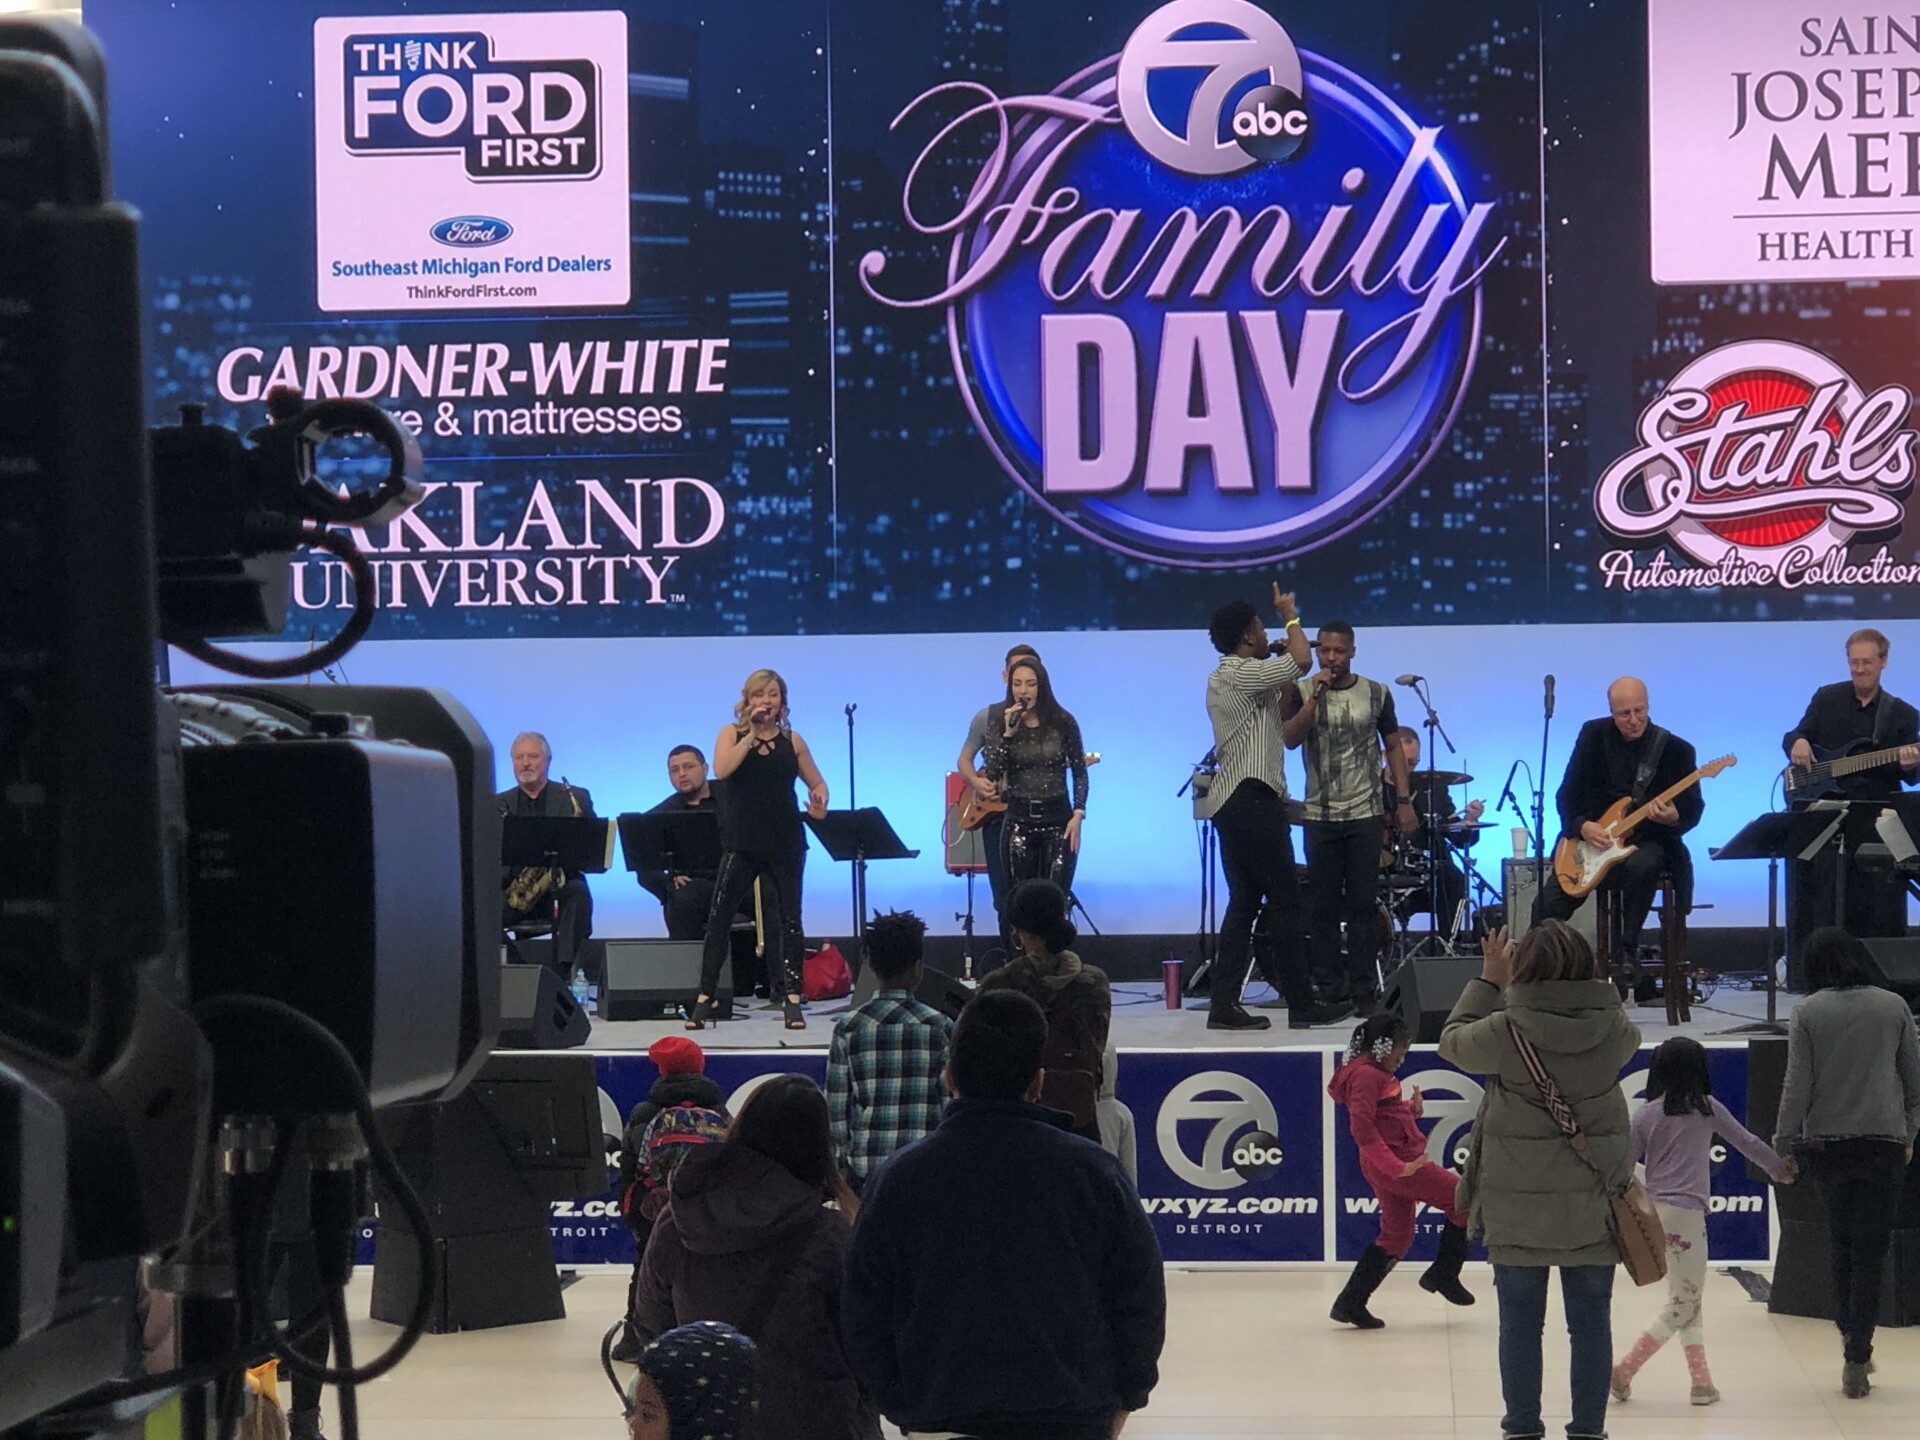 Channel 7 Family Day at the North American International Auto Show